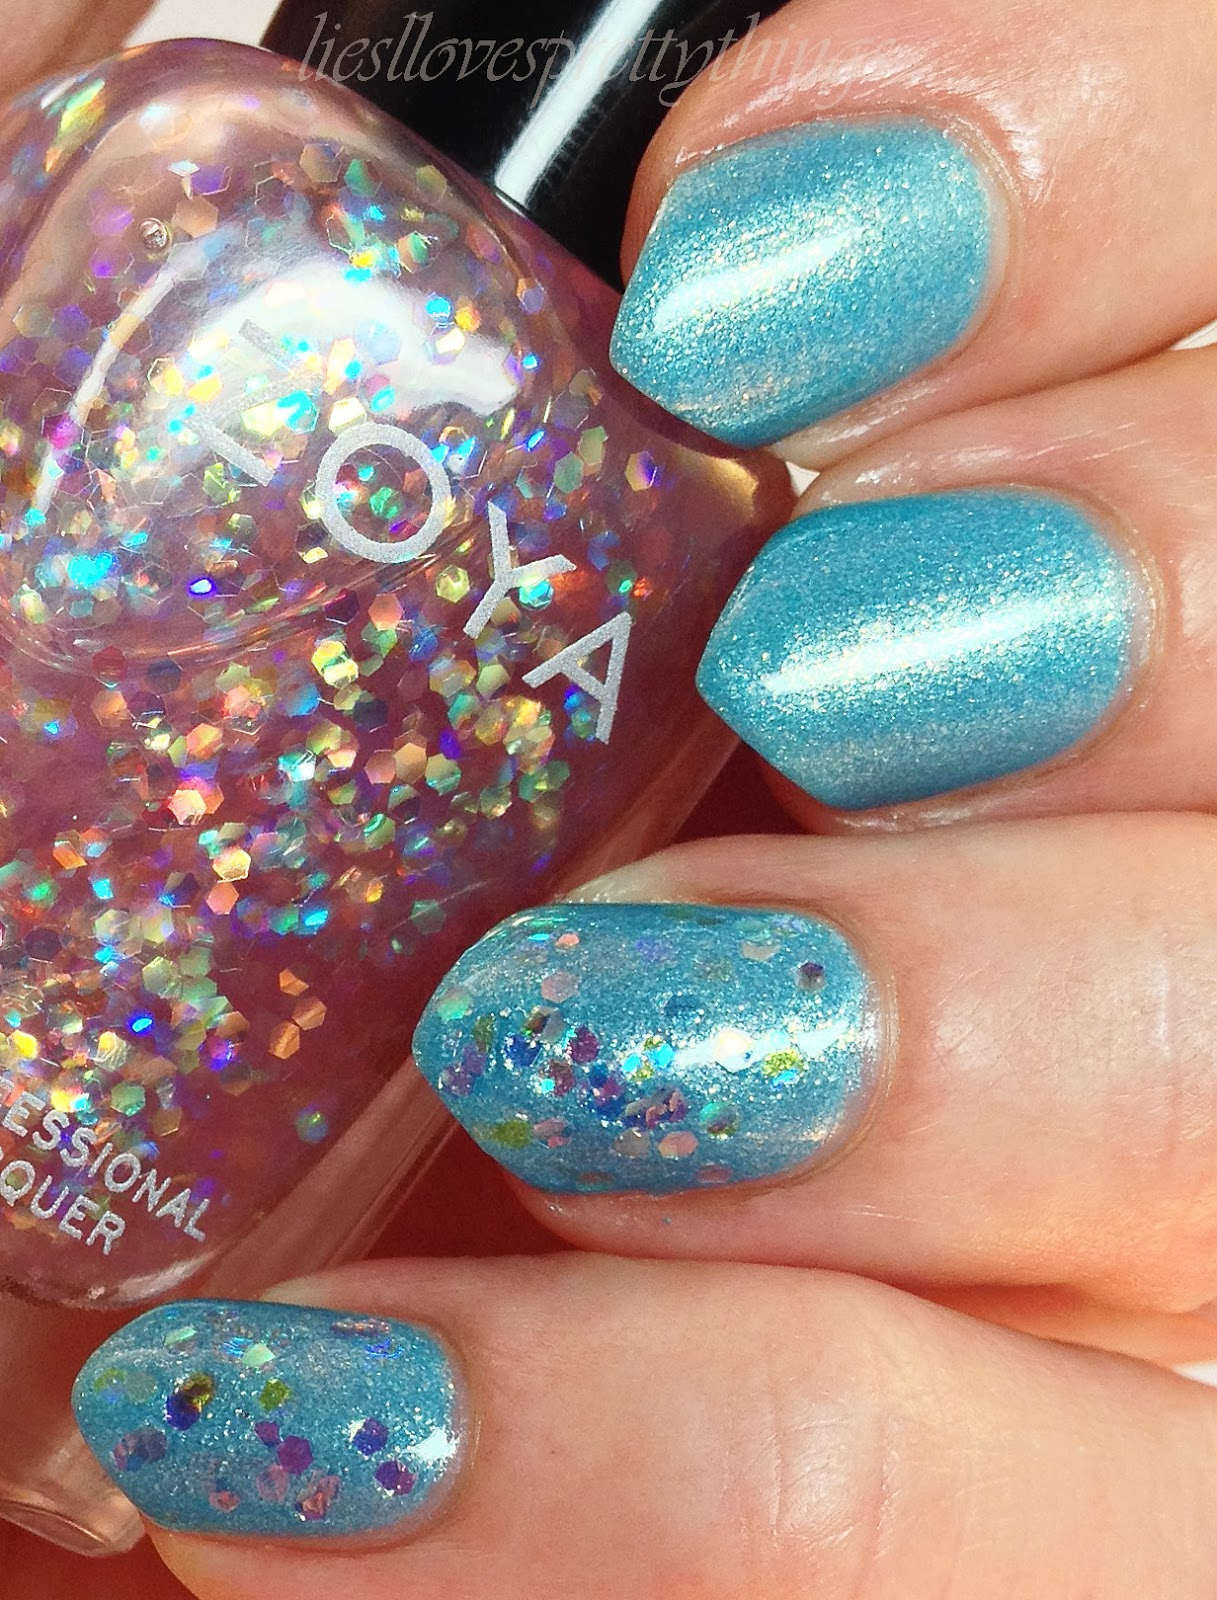 Zoya Monet swatch and review